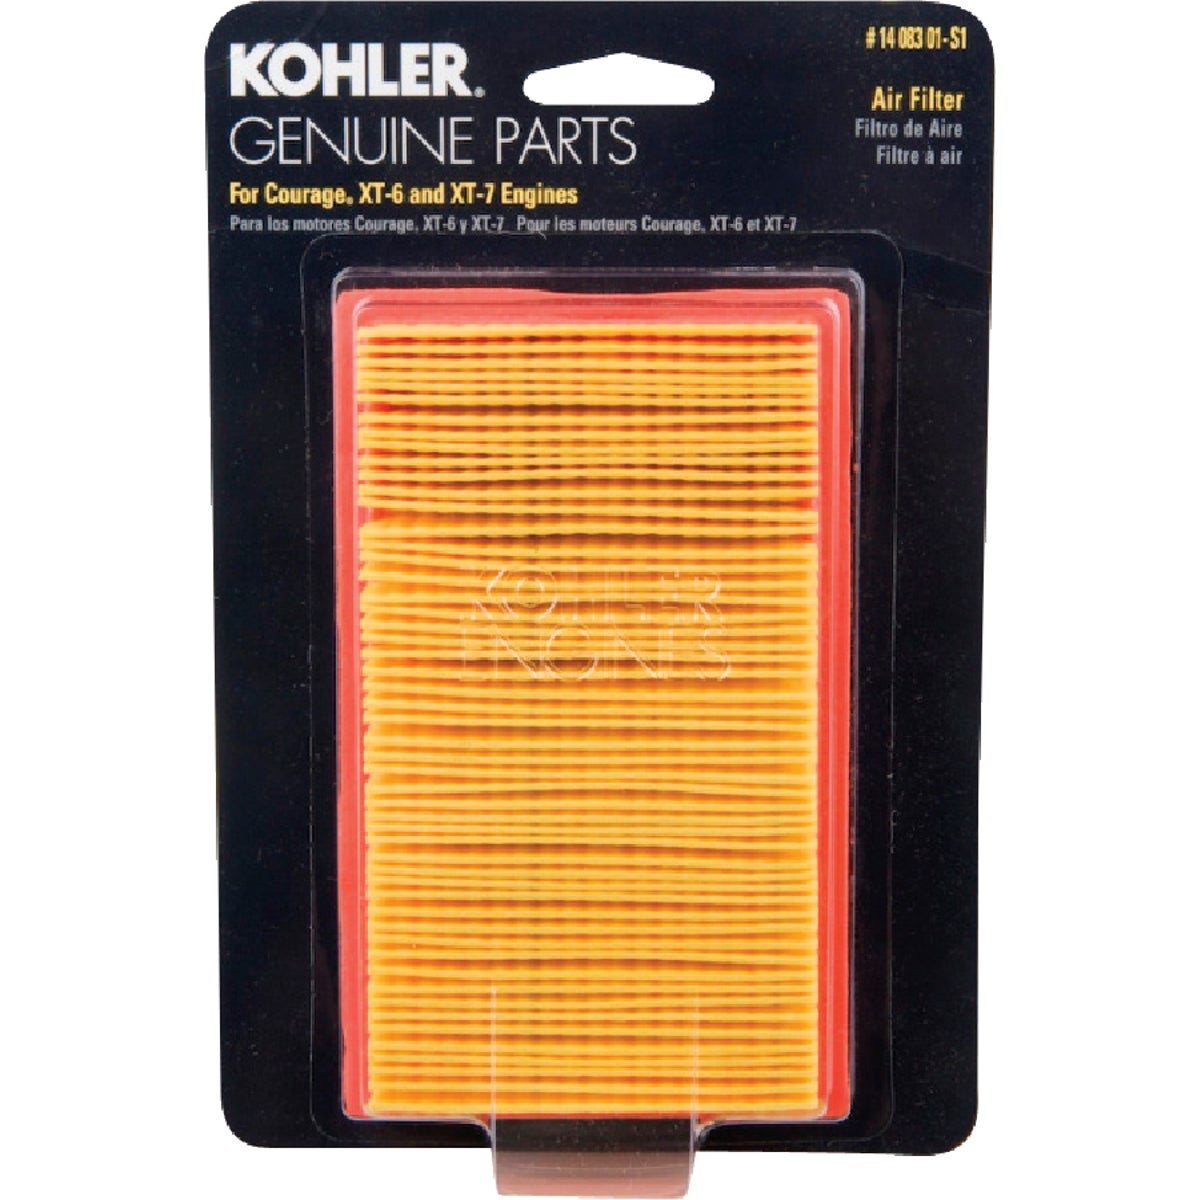 KOHLER AIR FILTER - 1408301S1C by Arnold Corp